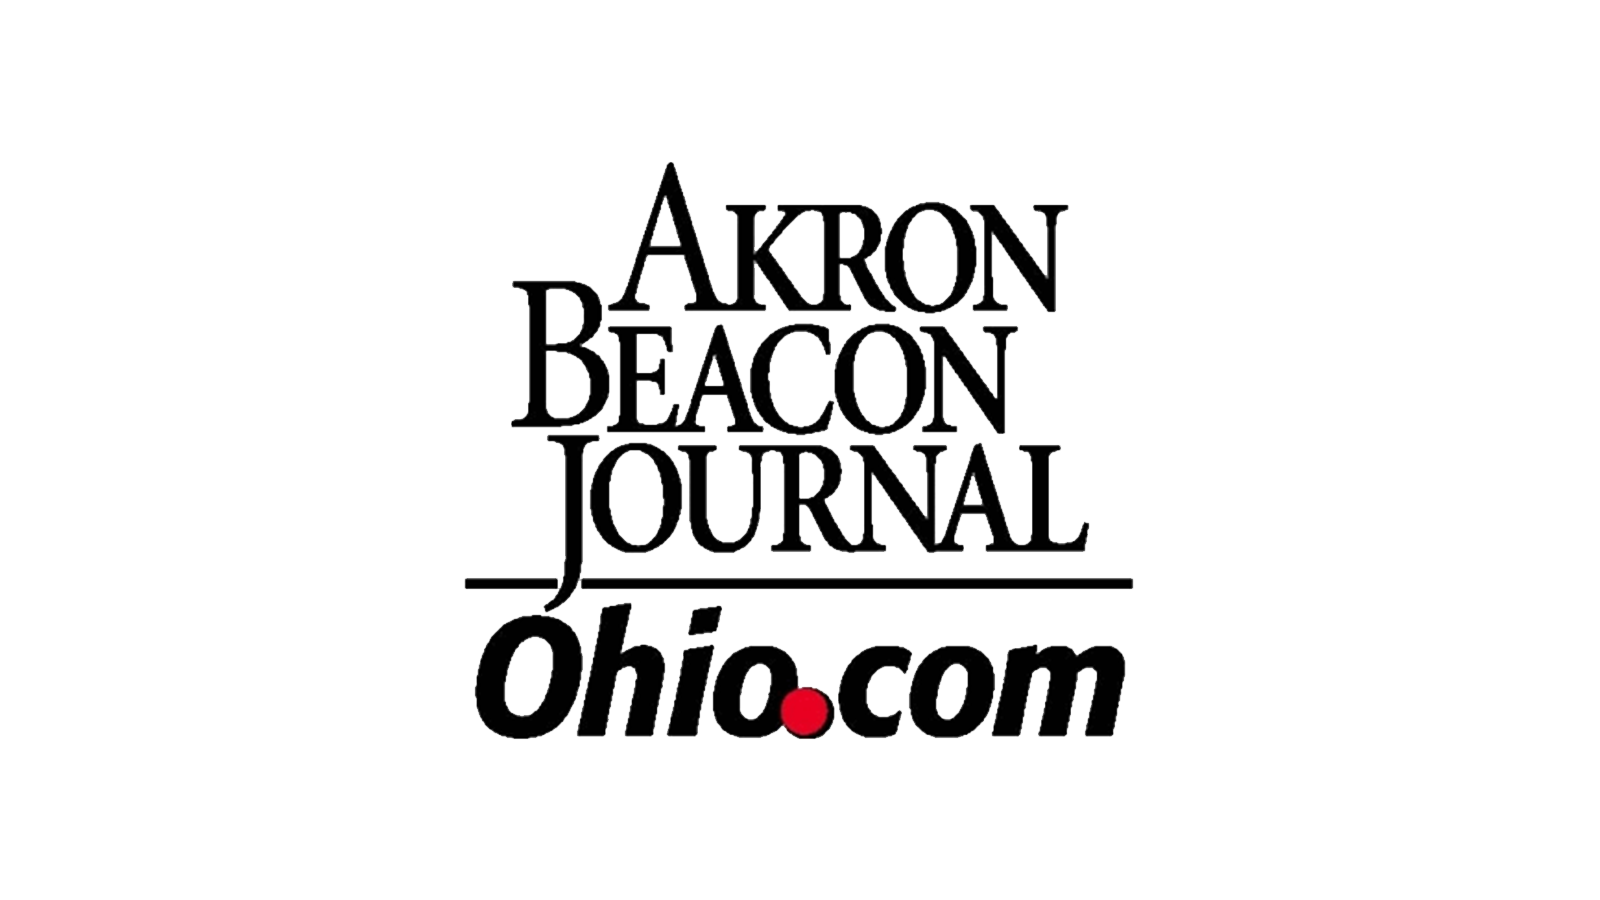 akron-beacon-journal.png